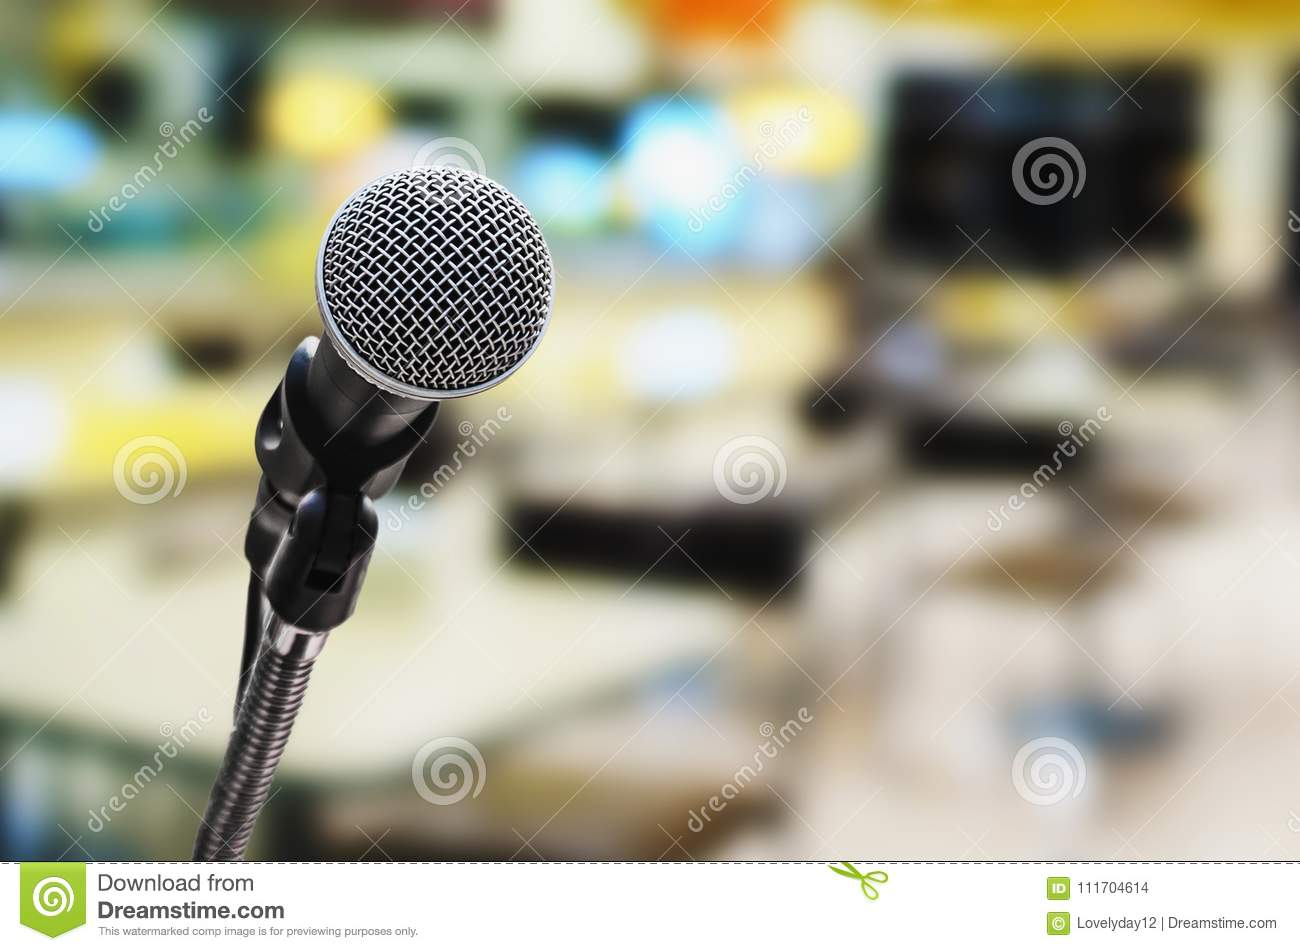 Microphone In Conference Room With Blur Light Stock Photo - Image of